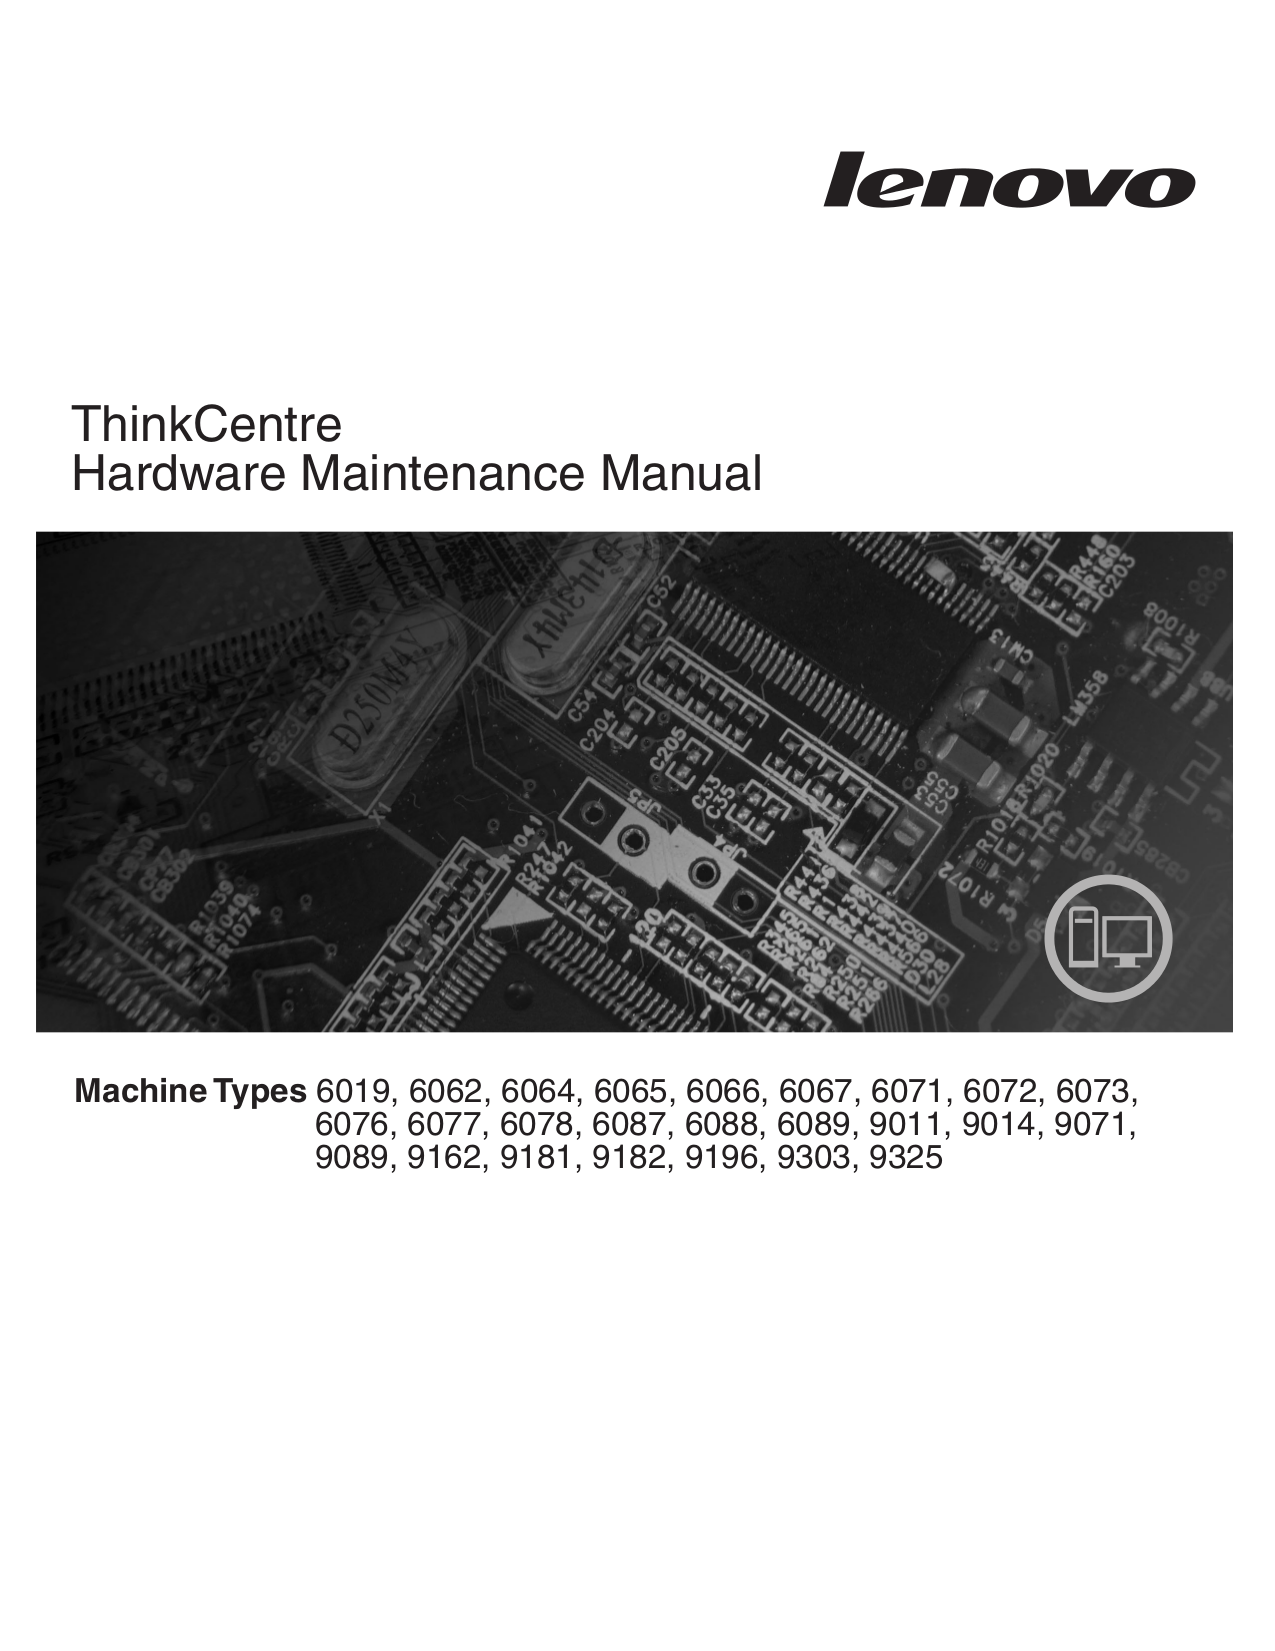 pdf for Lenovo Desktop ThinkCentre M57p 9089 manual